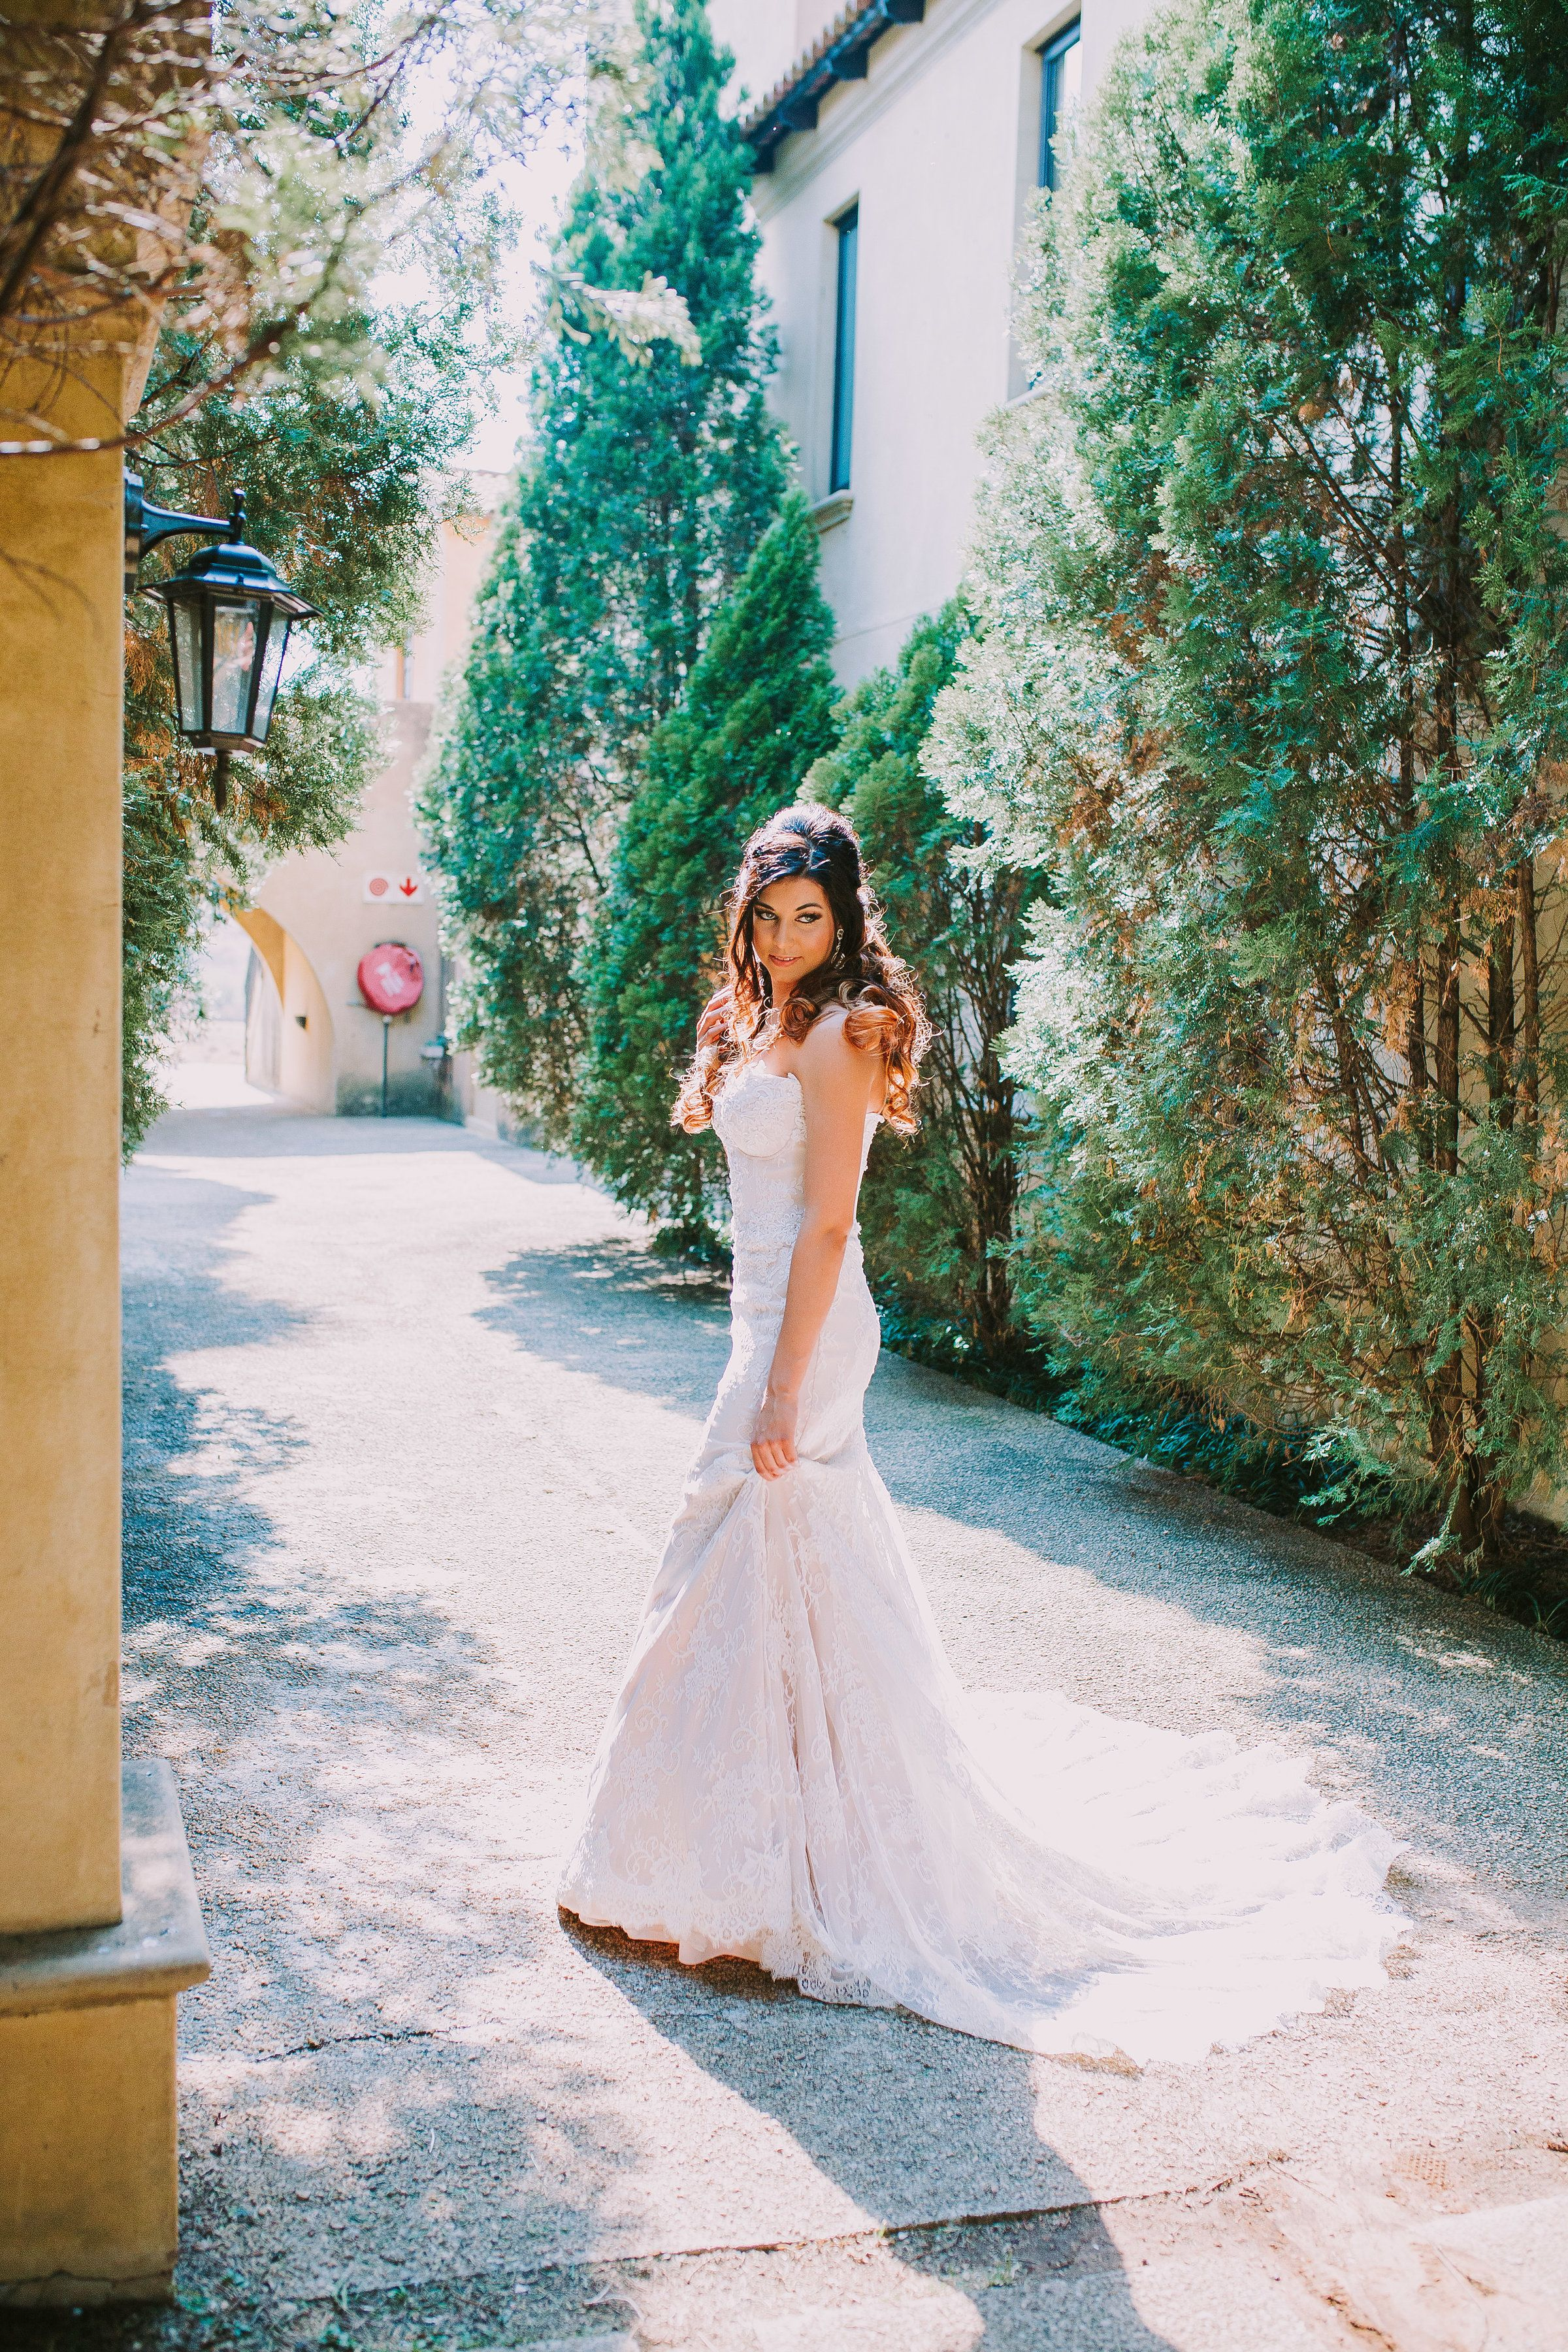 Pin By Avianto On Real Life Weddings Johannesburg Wedding Mermaid Wedding Dress Wedding Dresses